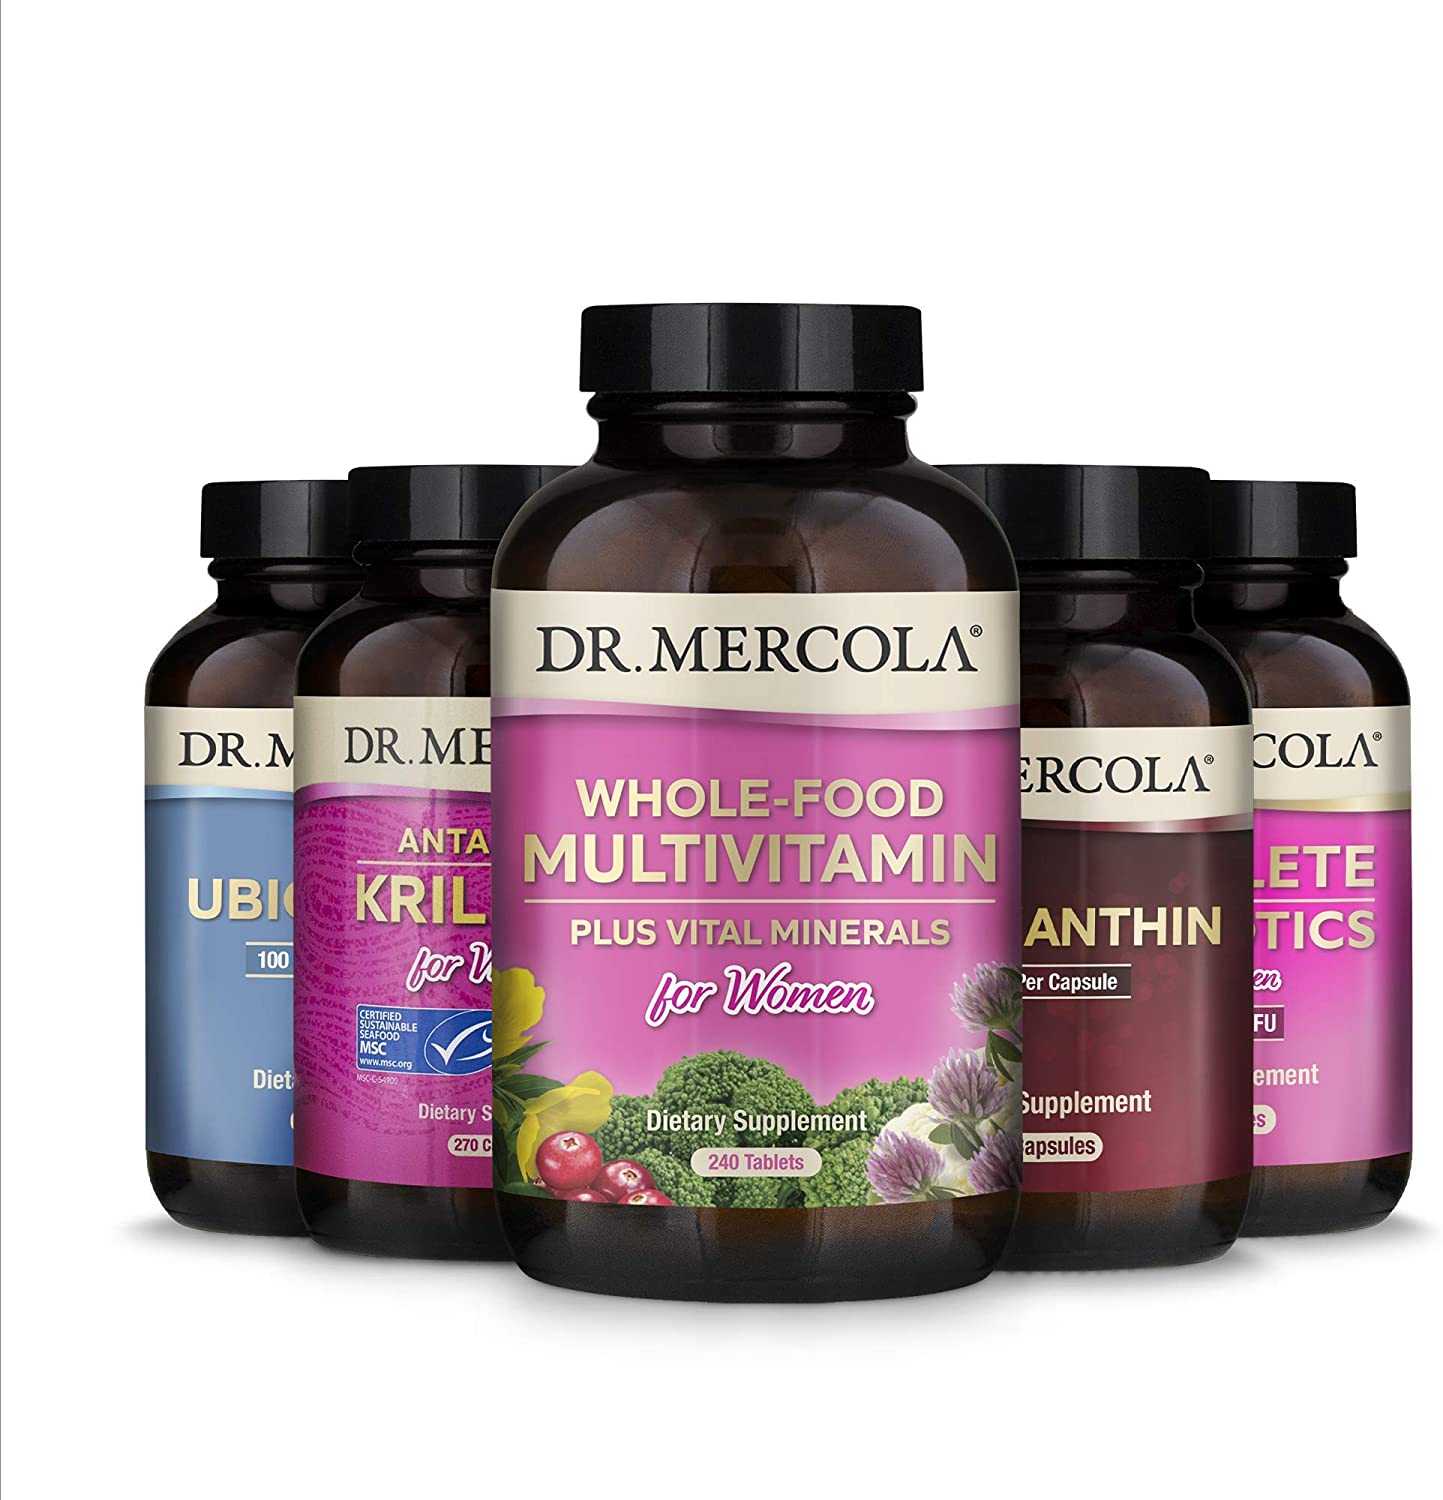 Dr. Mercola Core 5 for Women (30 Servings), Complete Probiotics for Women, Astaxanthin, Ubiquinol, Whole-Food Multivitamin for Women, Krill Oil for Women, Supports Overall Health*, Non GMO